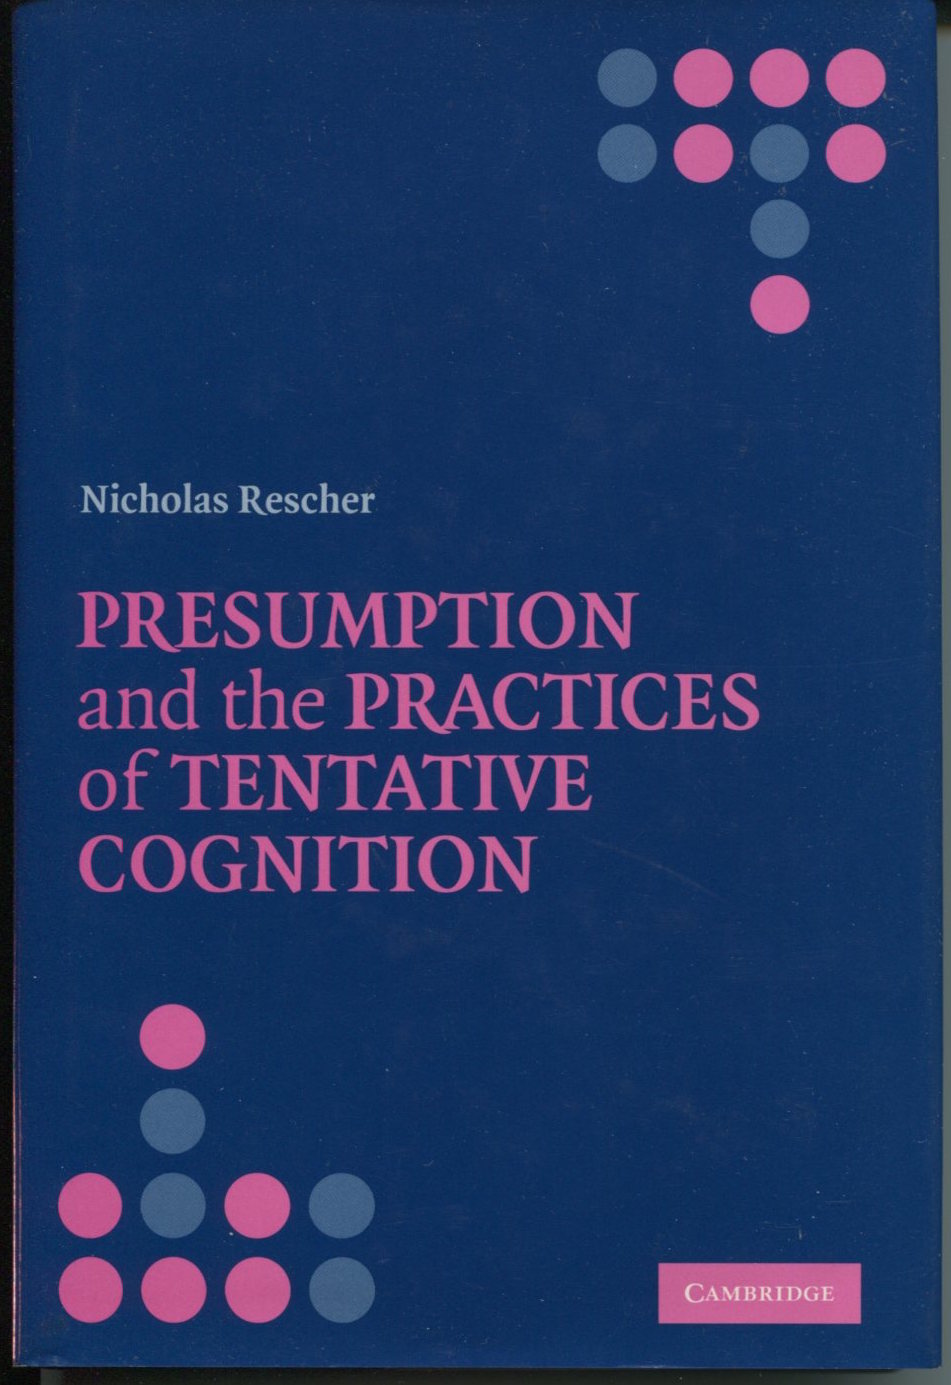 Presumption and the Practices of Tentative Cognition.